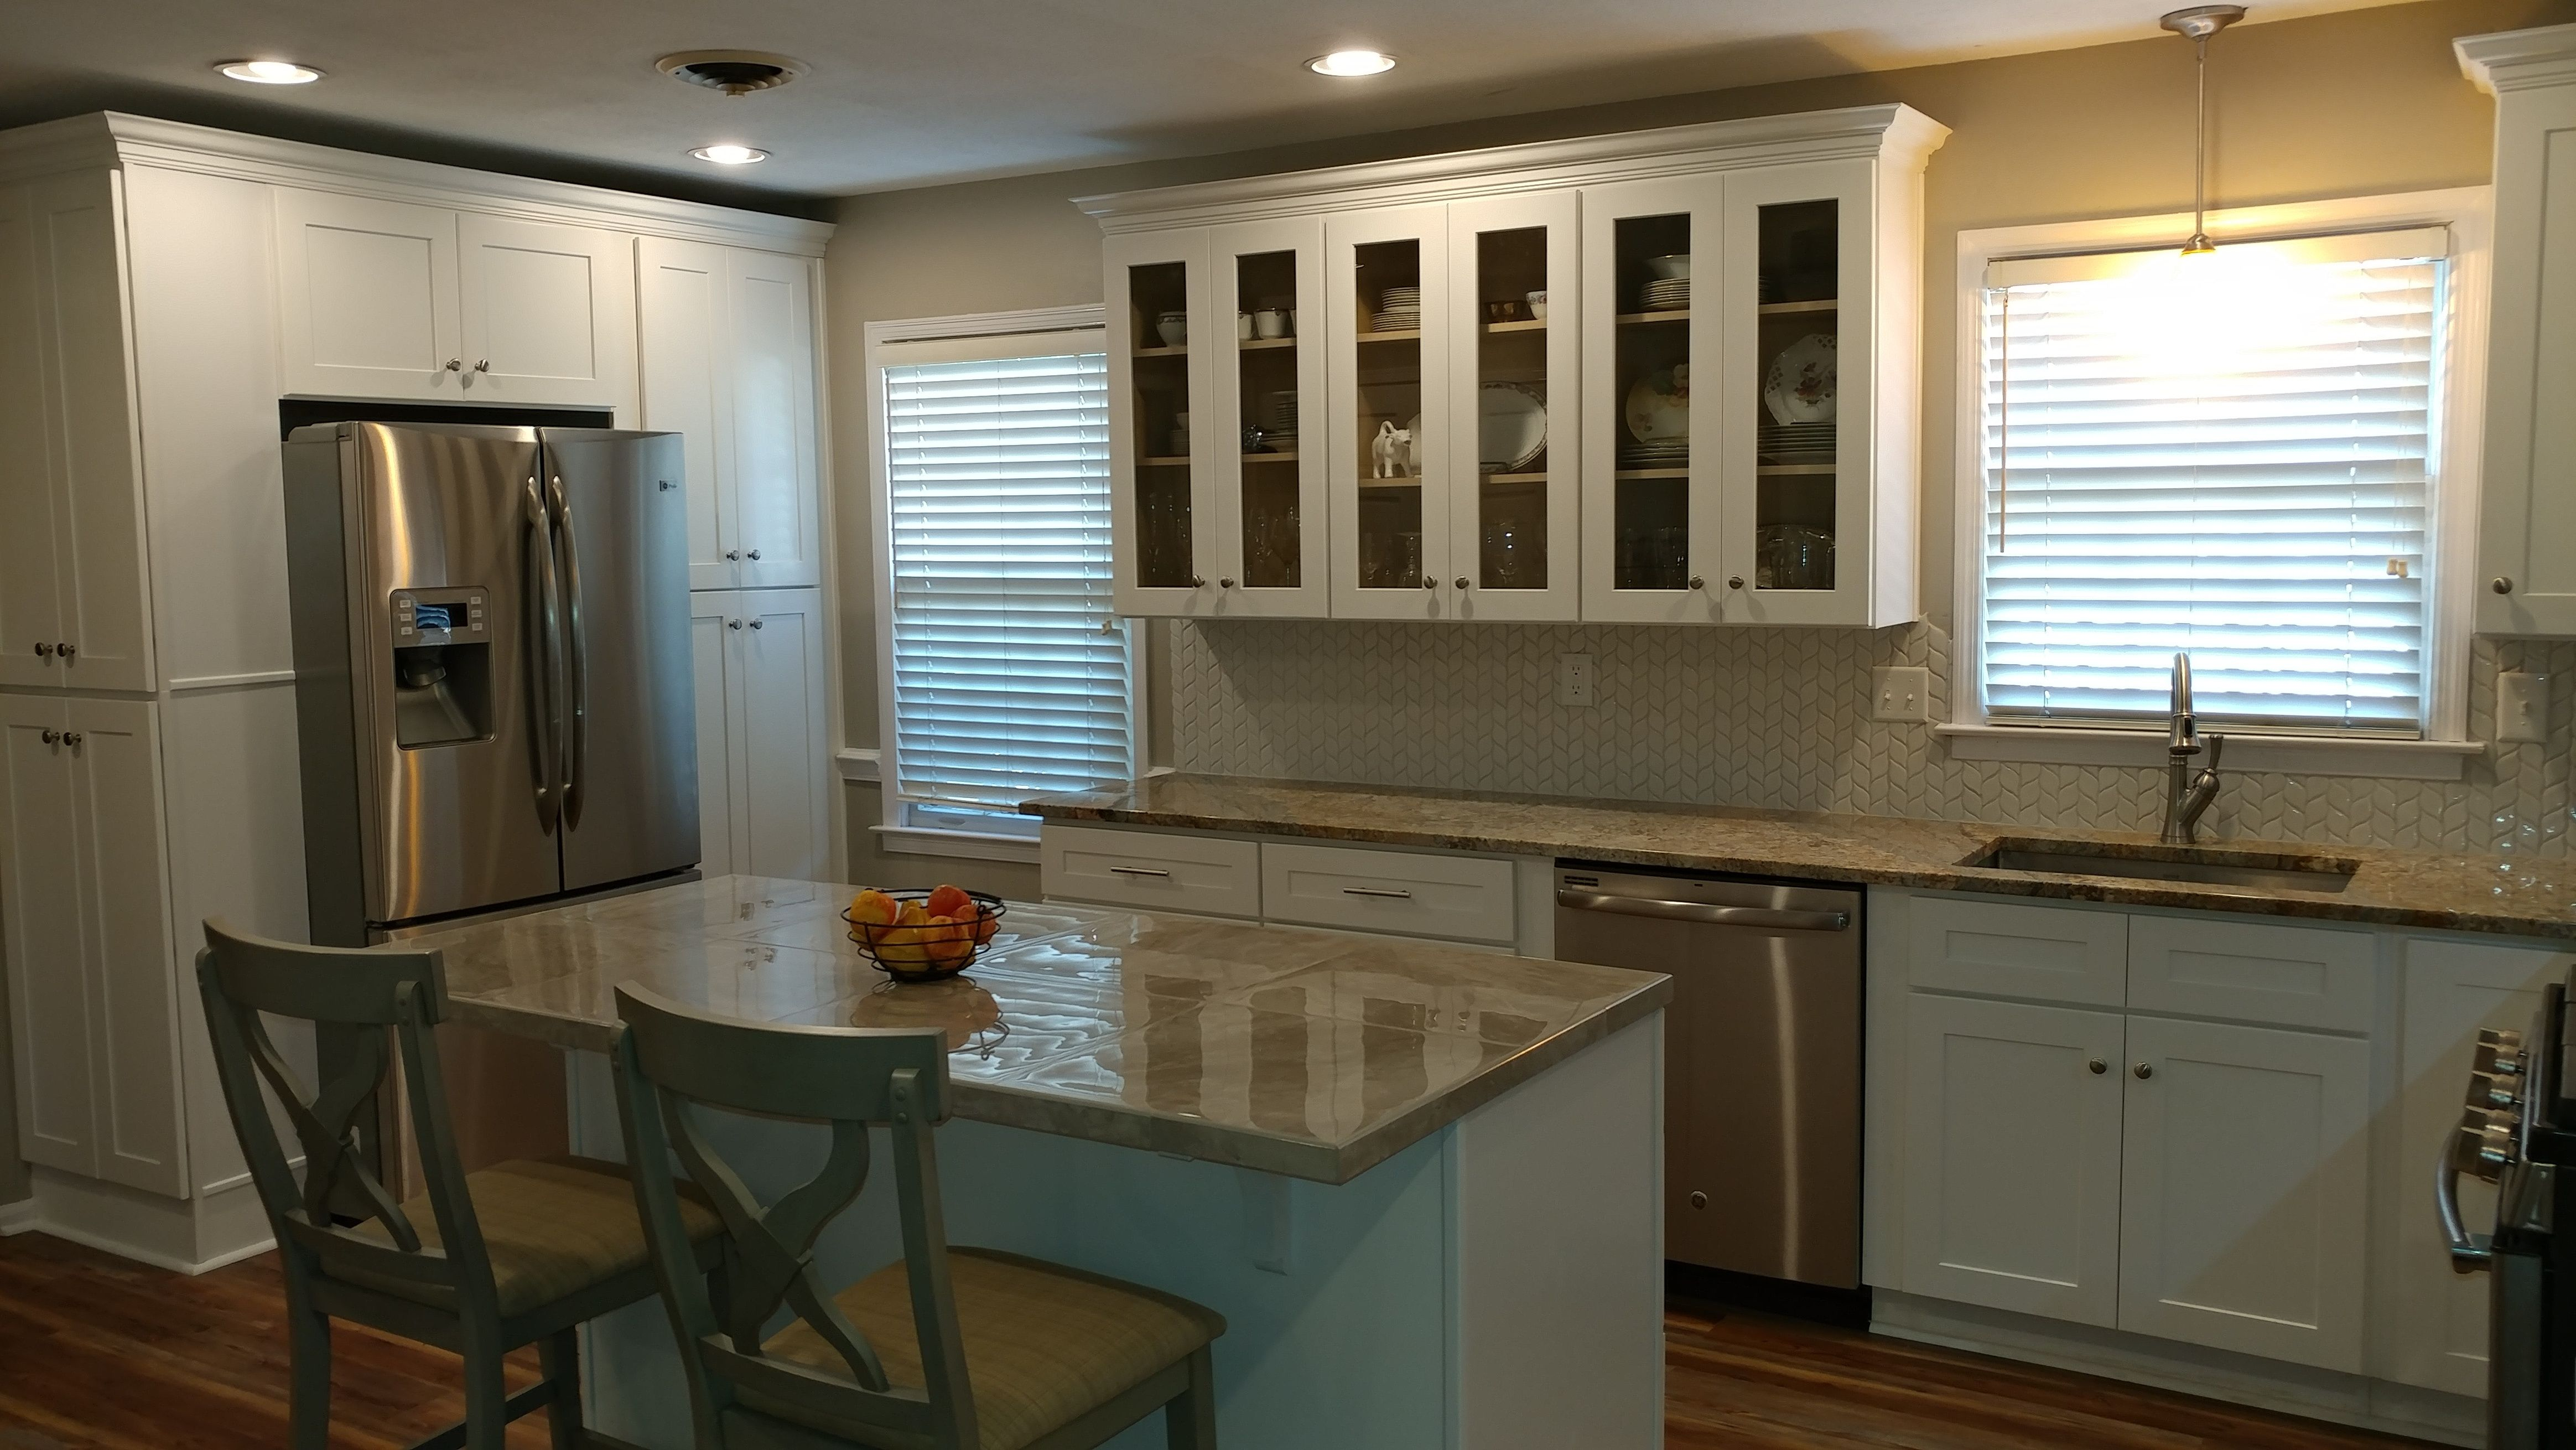 Kitchen Remodel By Lori C Of Montgomery Al Kitchen Remodel Remodeling Inspiration Home